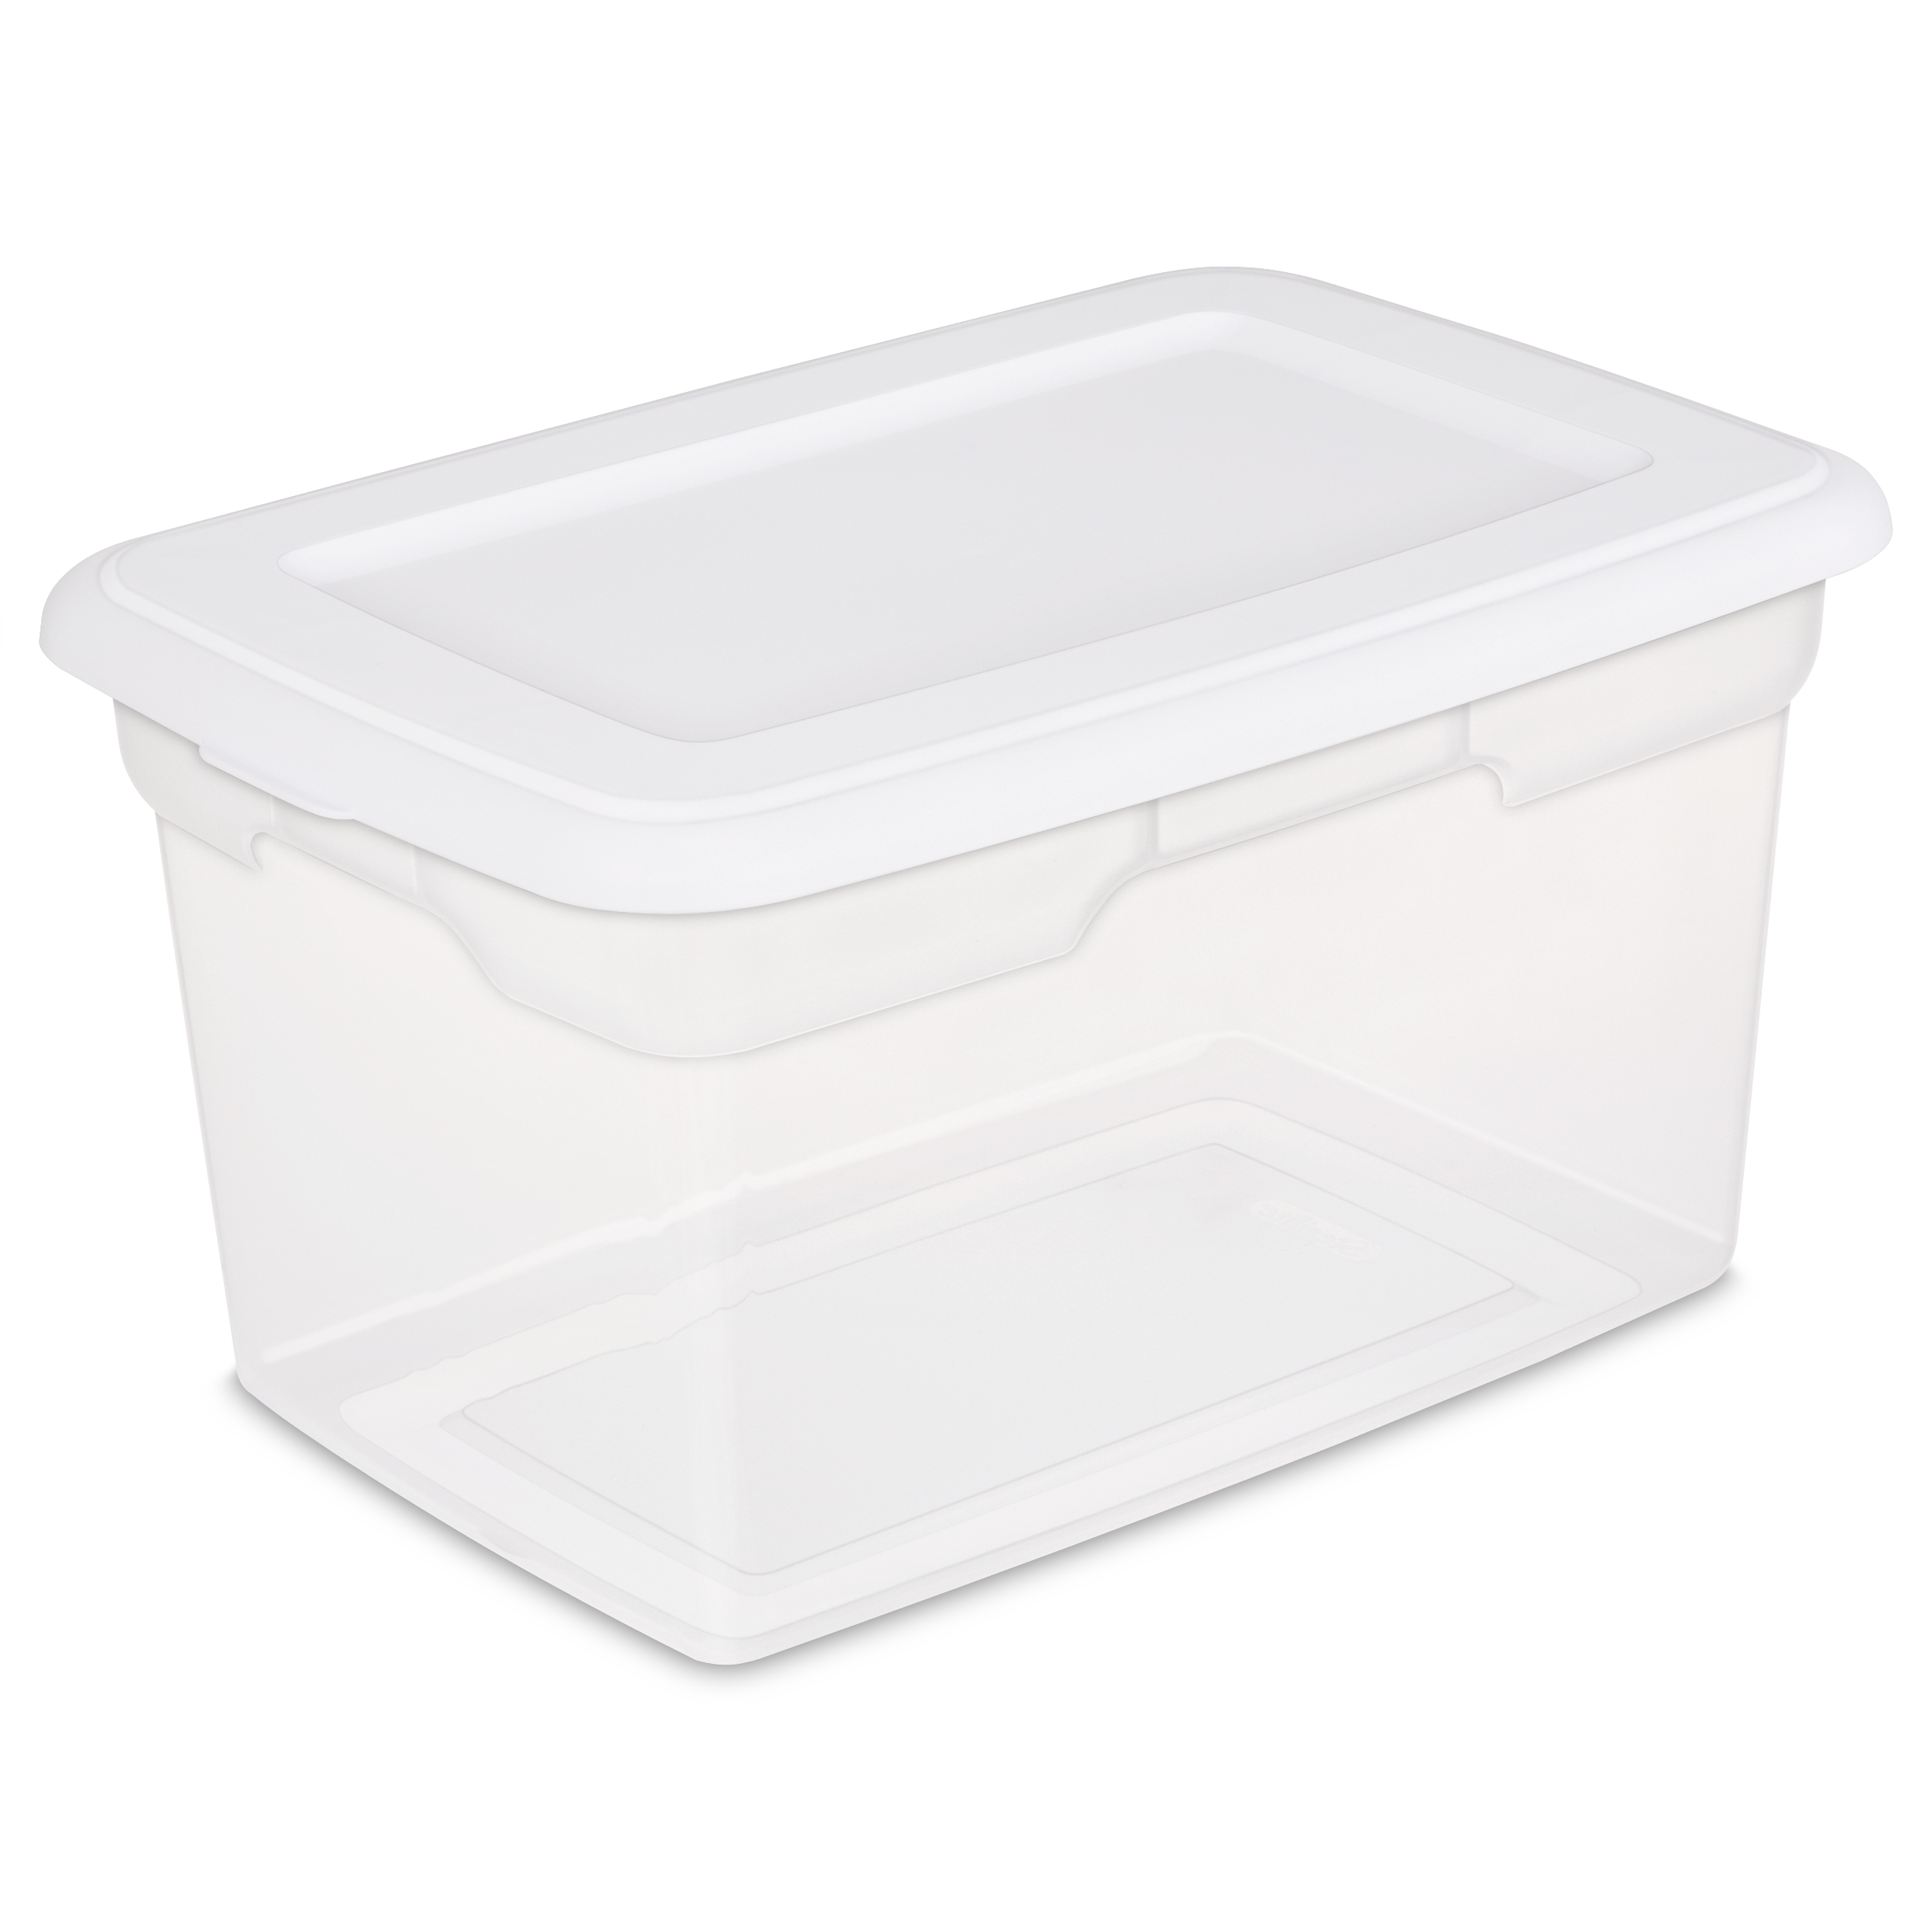 Sterilite 20 Qt./18.9 L Storage Box, White